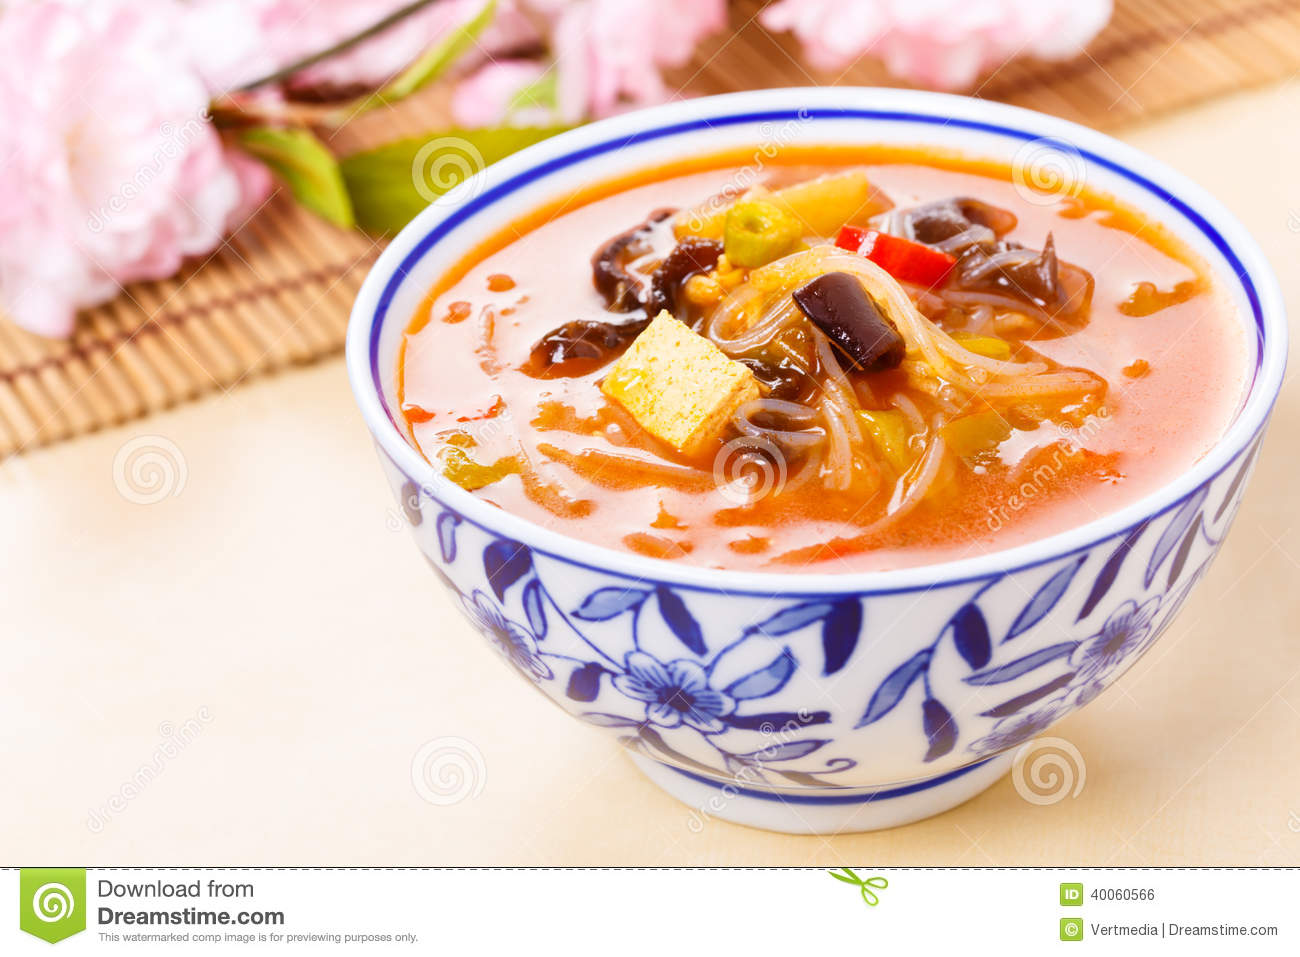 Chinese Hot And Sour Soup Stock Photo - Image: 40060566